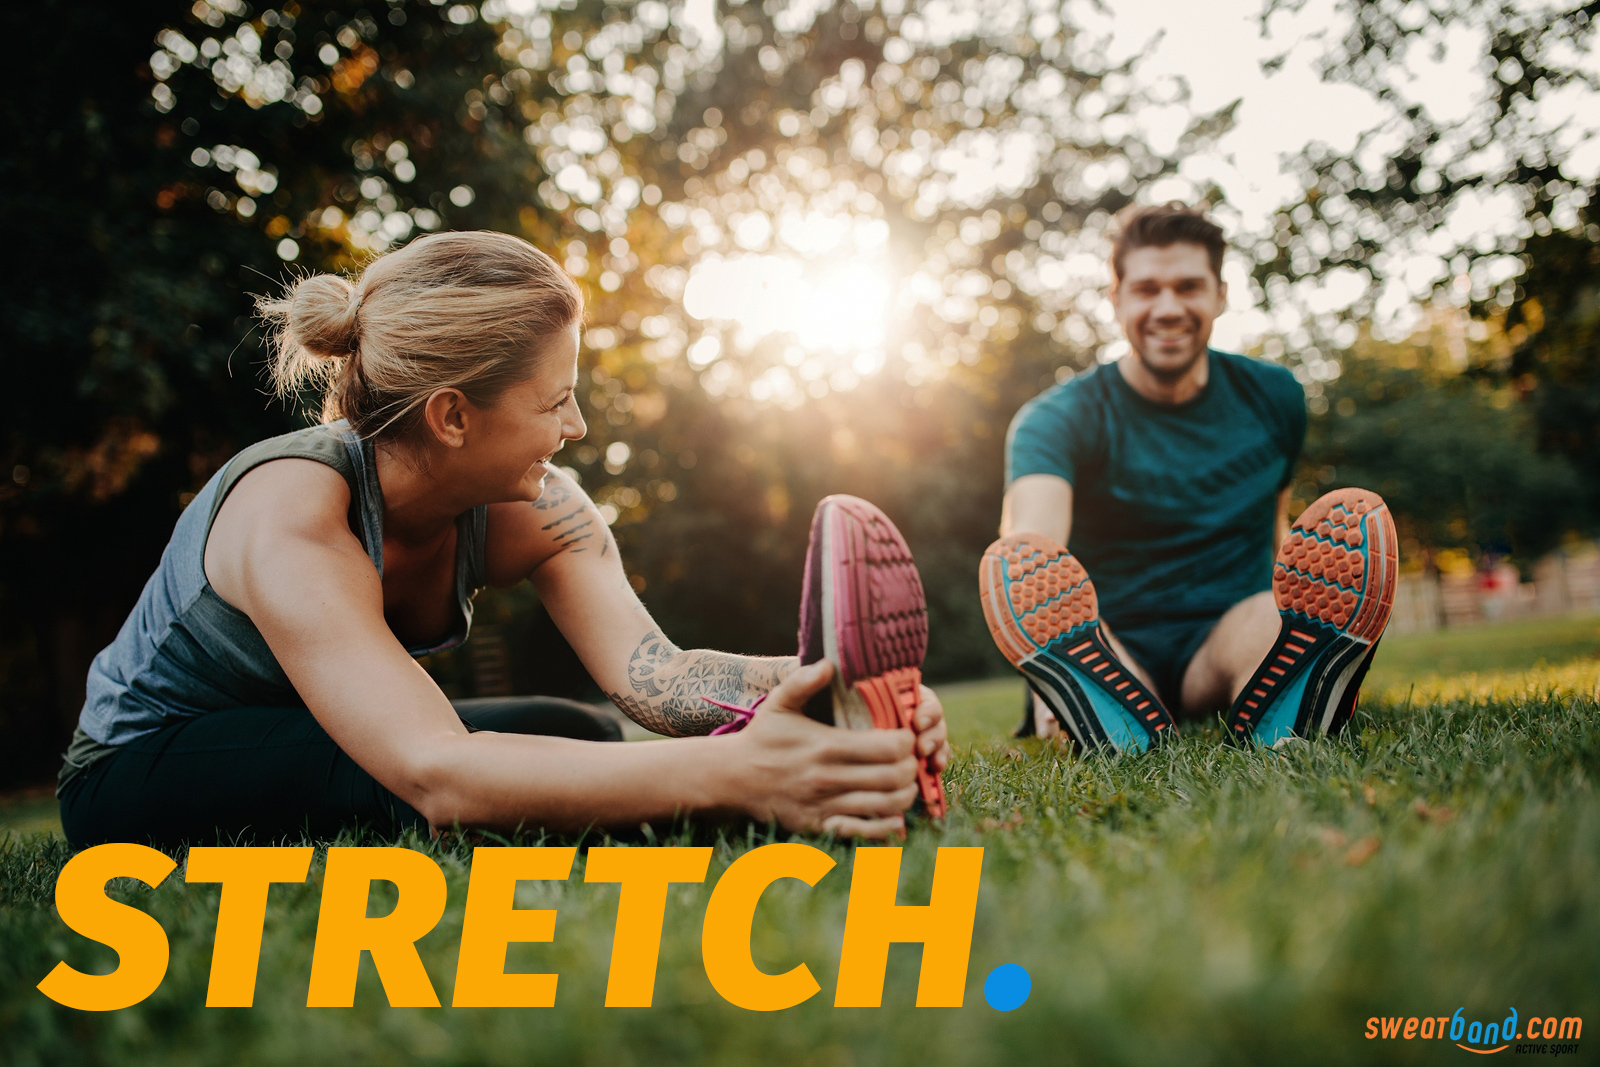 sexercise and stretch